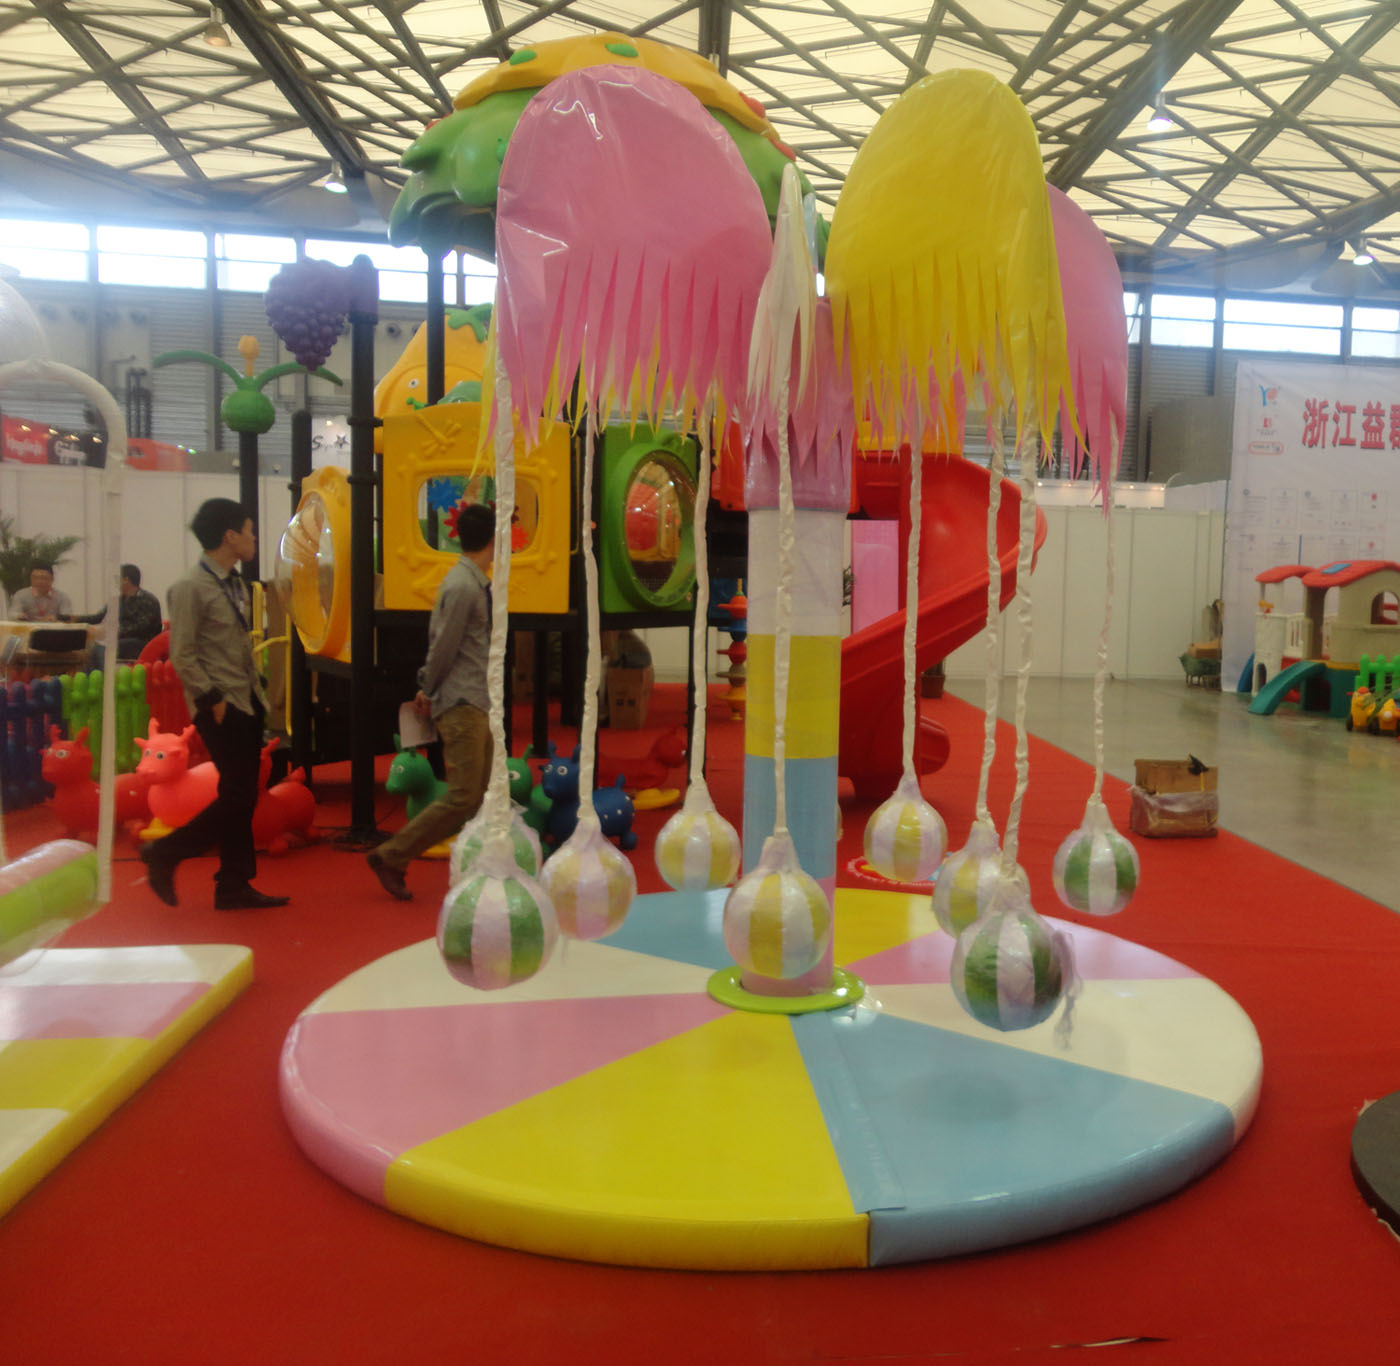 2012 Shanghai toys Fair in Oct 11-13rd.